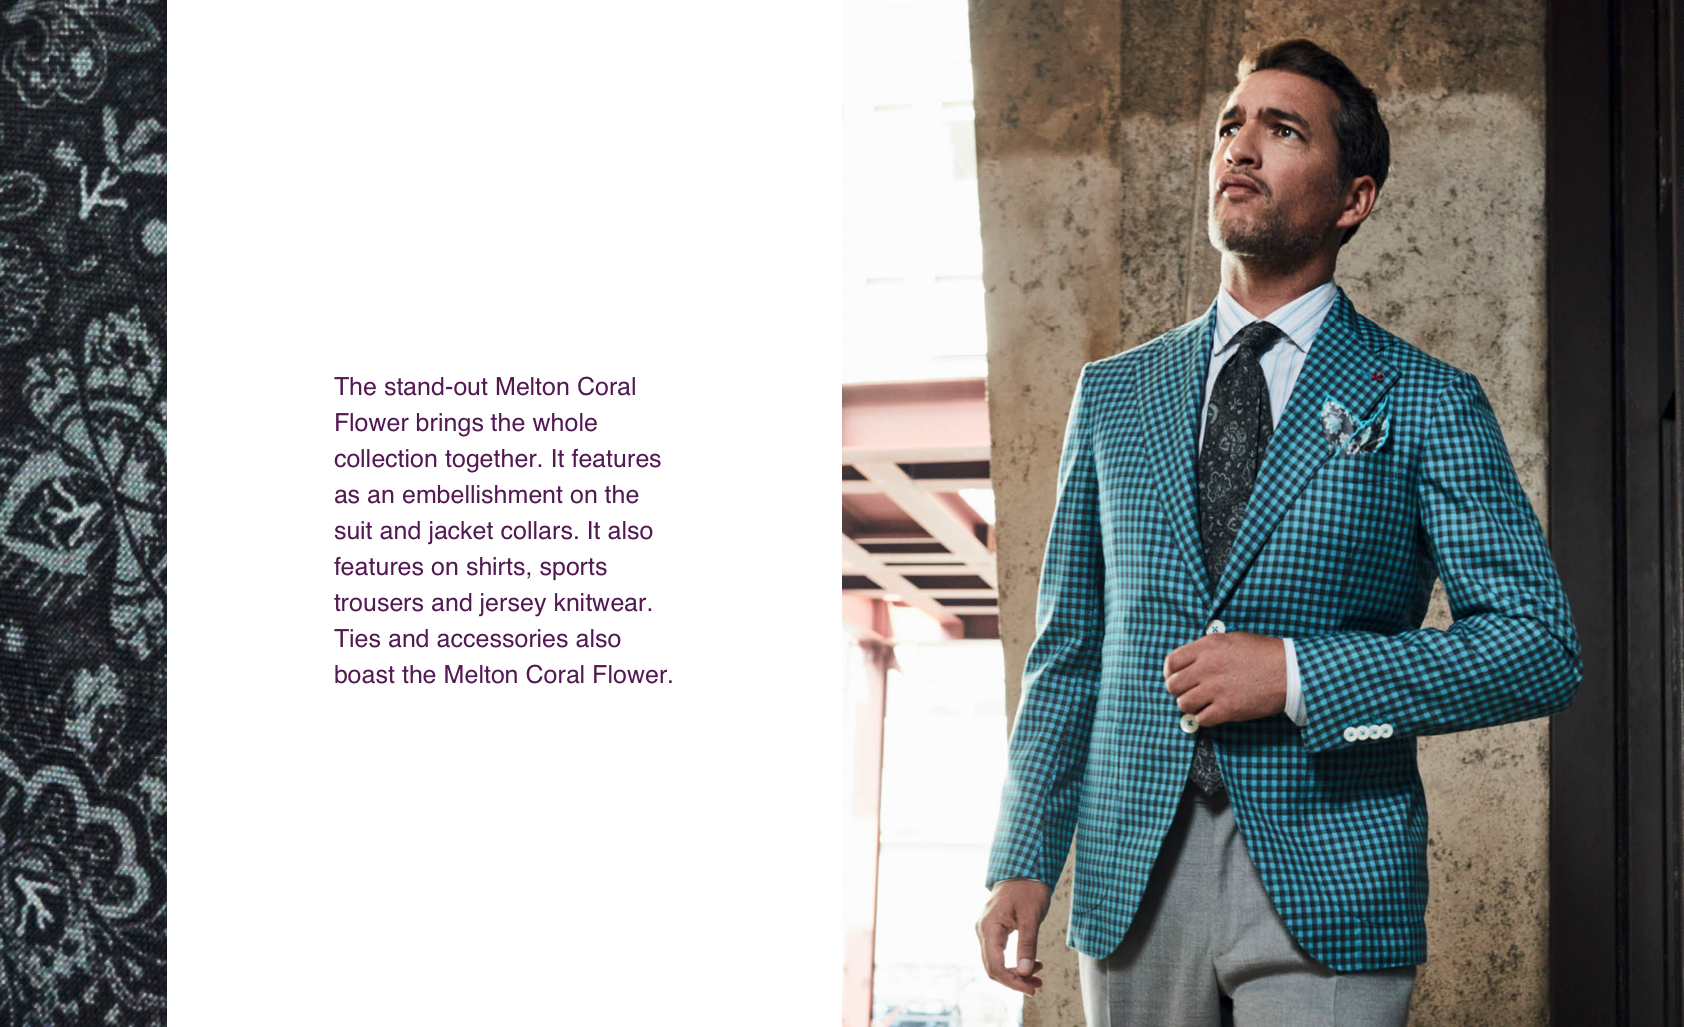 The stand-out Melton Coral Flower brings the whole collection together. It features as an embellishment on the suit and jacket collars. It also features on shirts, sports trousers and jersey knitwear. Ties and accessories also boast the Melton Coral Flower.